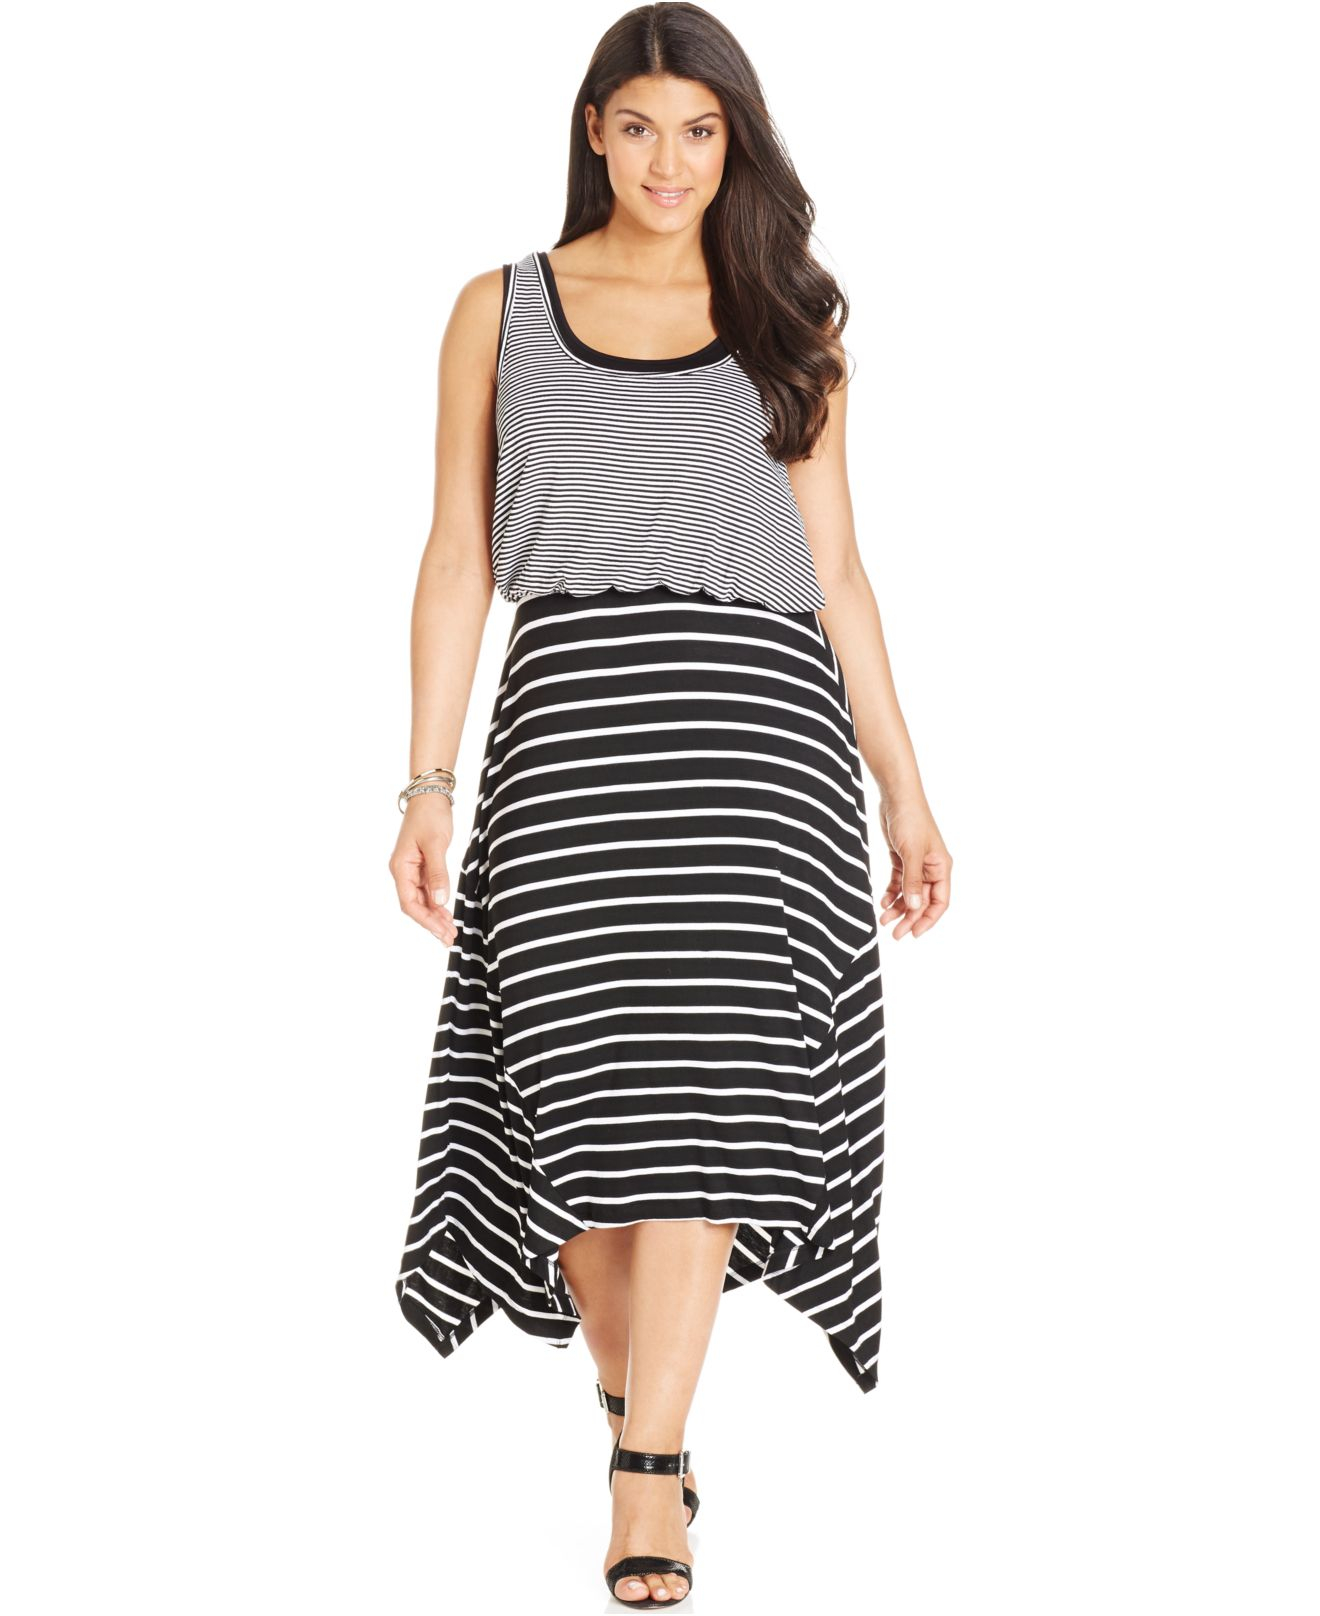 Lyst - Style & co. Style&co. Plus Size Striped Layered-look Maxi ...